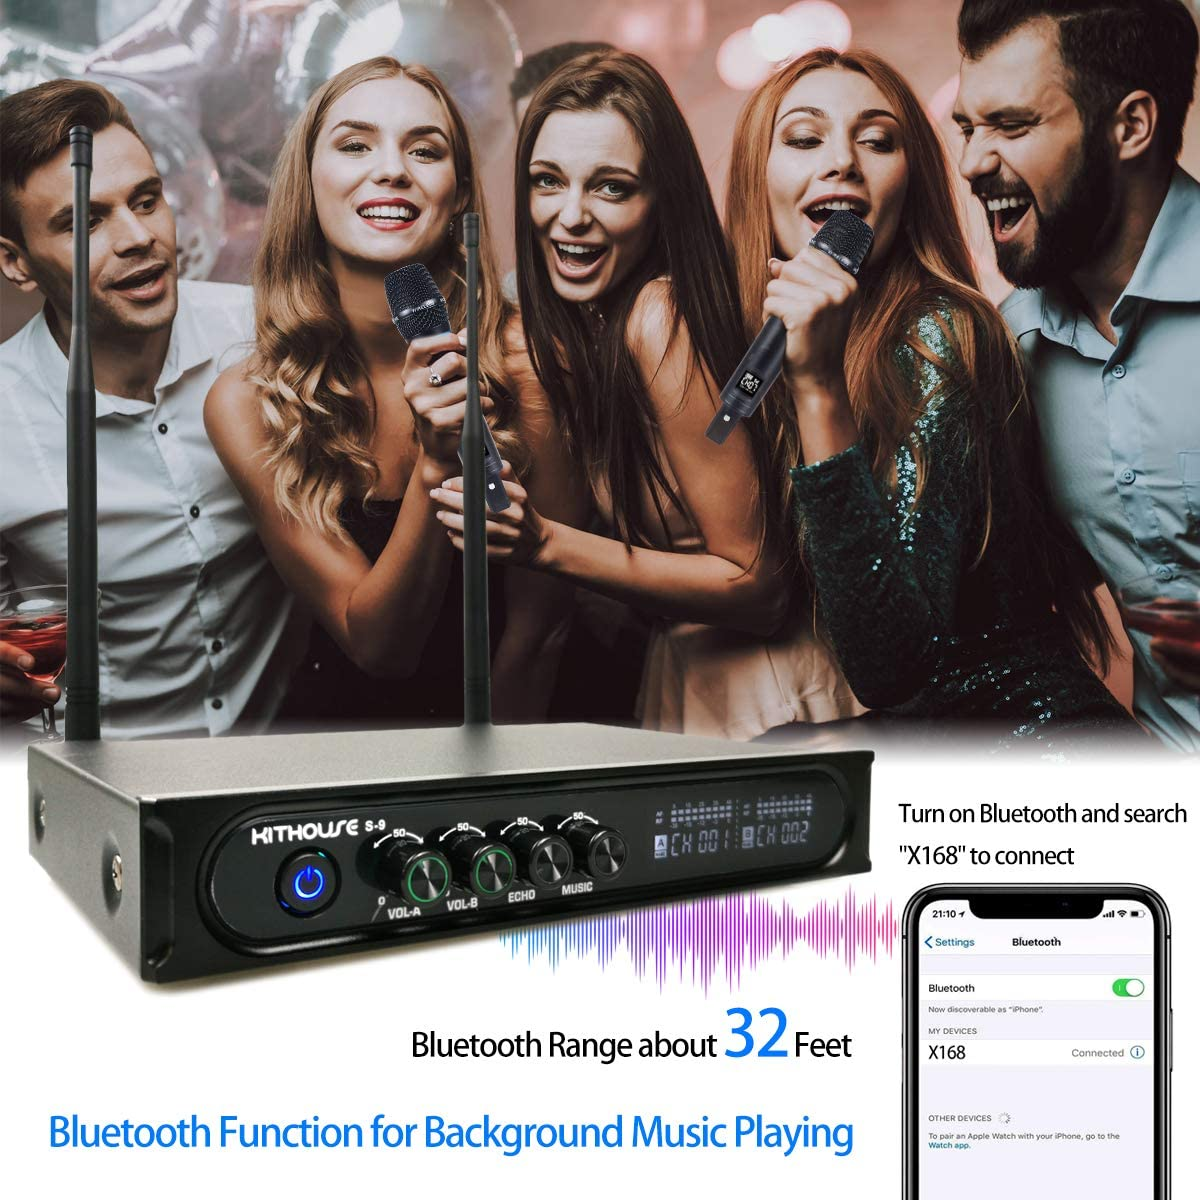 Kithouse S9 UHF Rechargeable Wireless Microphone System Karaoke Microphone Wireless Mic Cordless Dual with Bluetooth Receiver Box + Volume Control ECHO for Karaoke Singing Speech Meeting Church, 200FT